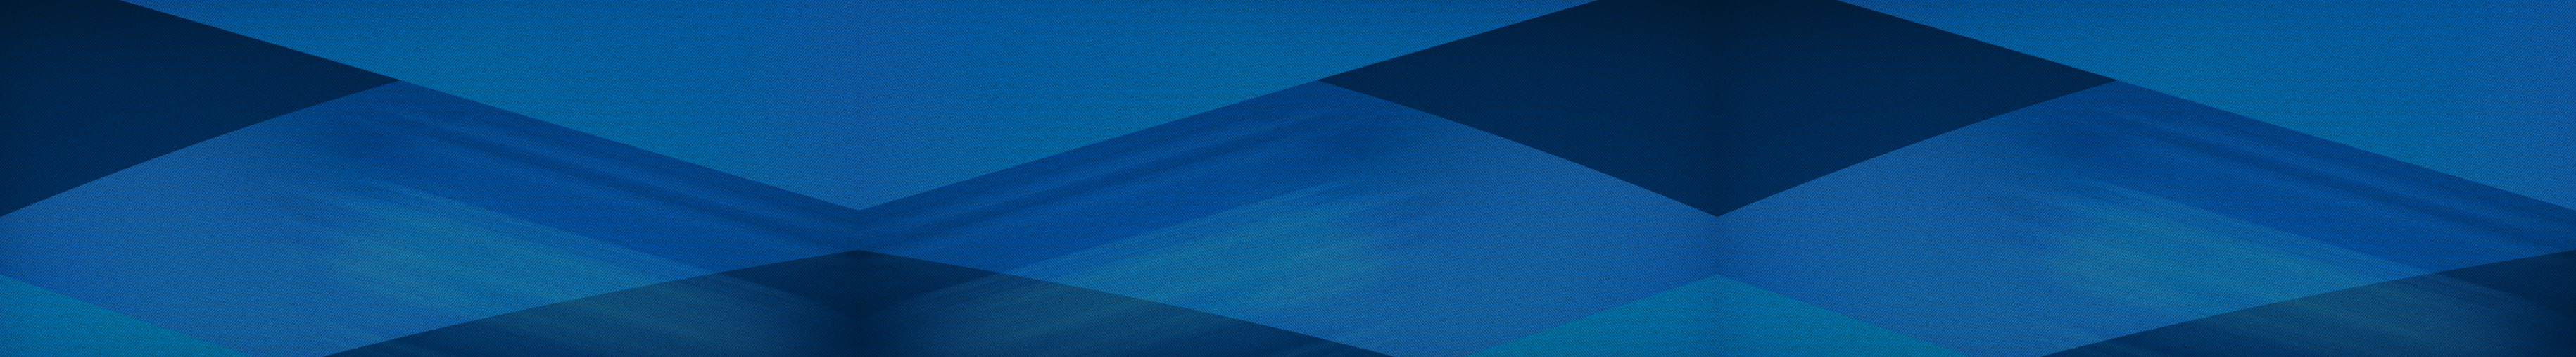 Synergy Tint & Graphics Header Background